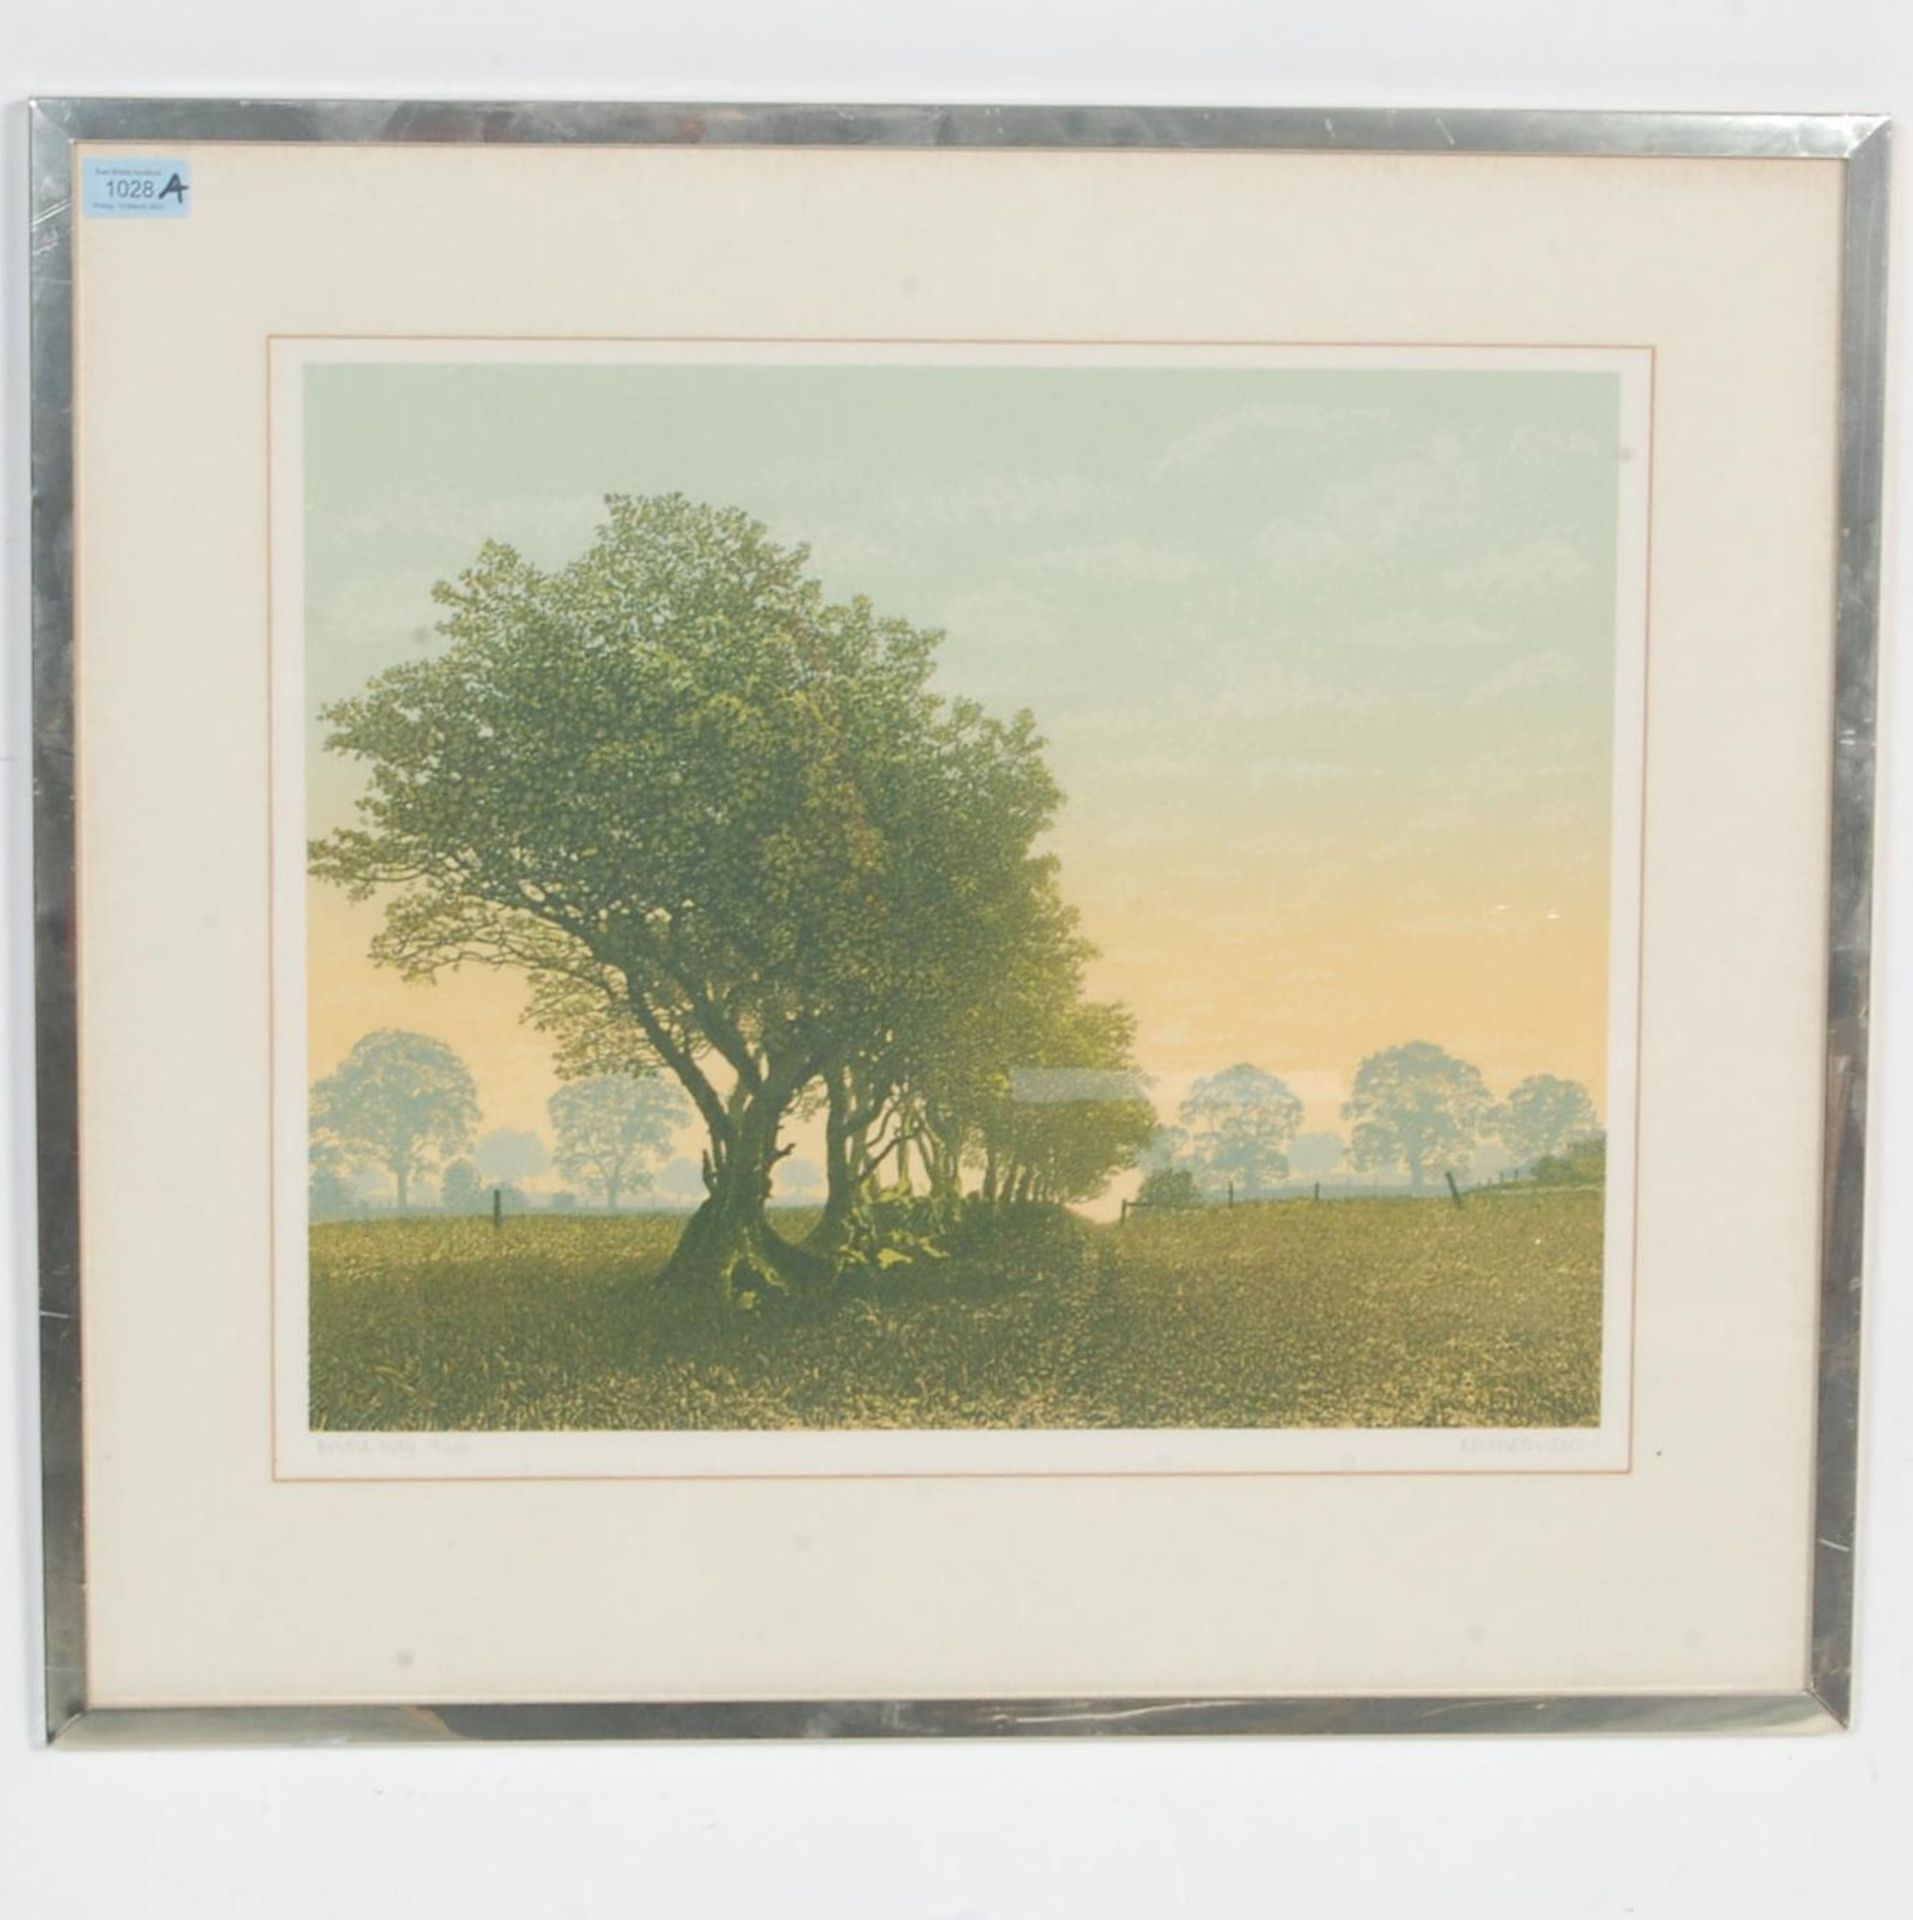 SIGNED LITHOGRAPH PLEINT BY KENNETH LEECH - BRIDLE WAY